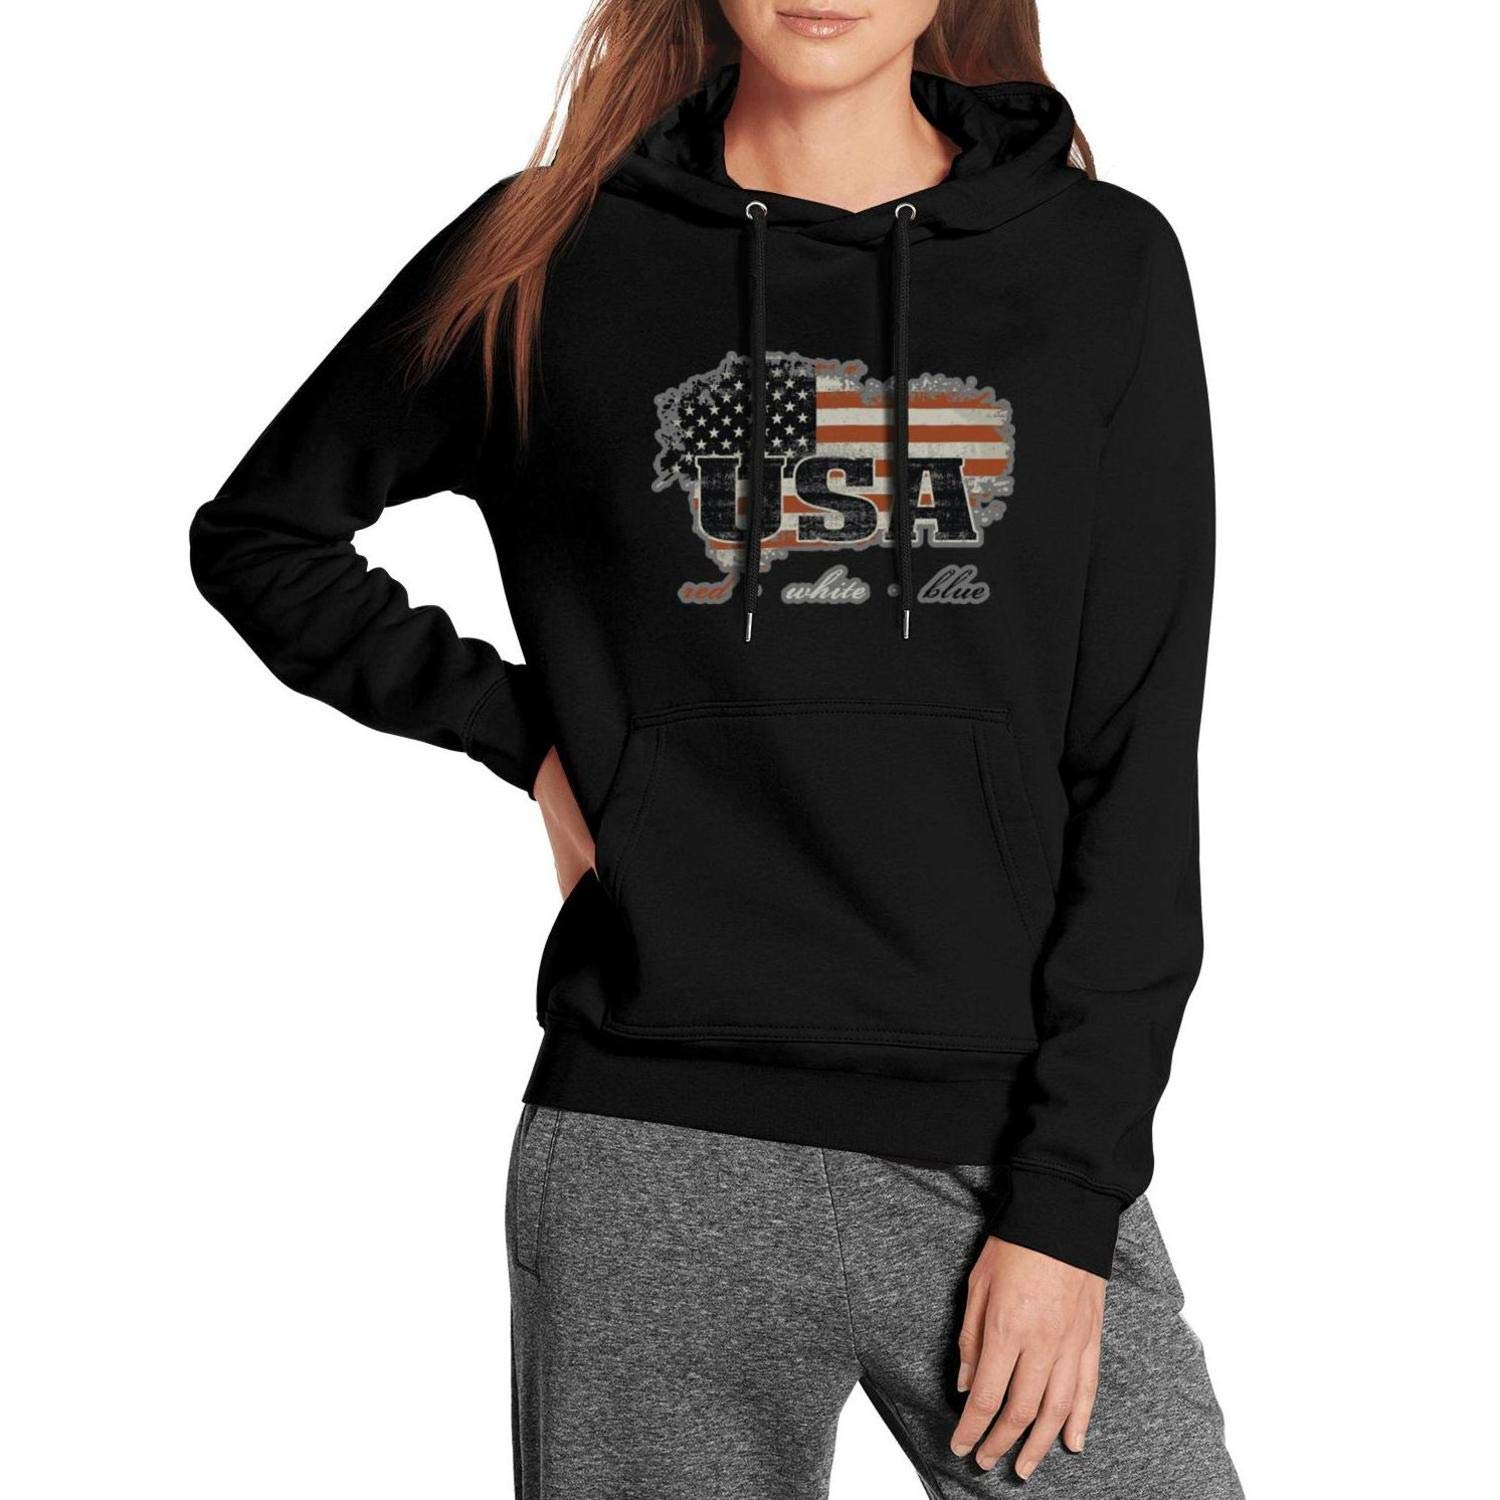 Grunge Flag of USA American Volleyball Sweatshirt Long Sleeve Wool Warm for Mens and Womens Cool Tees Hoodie